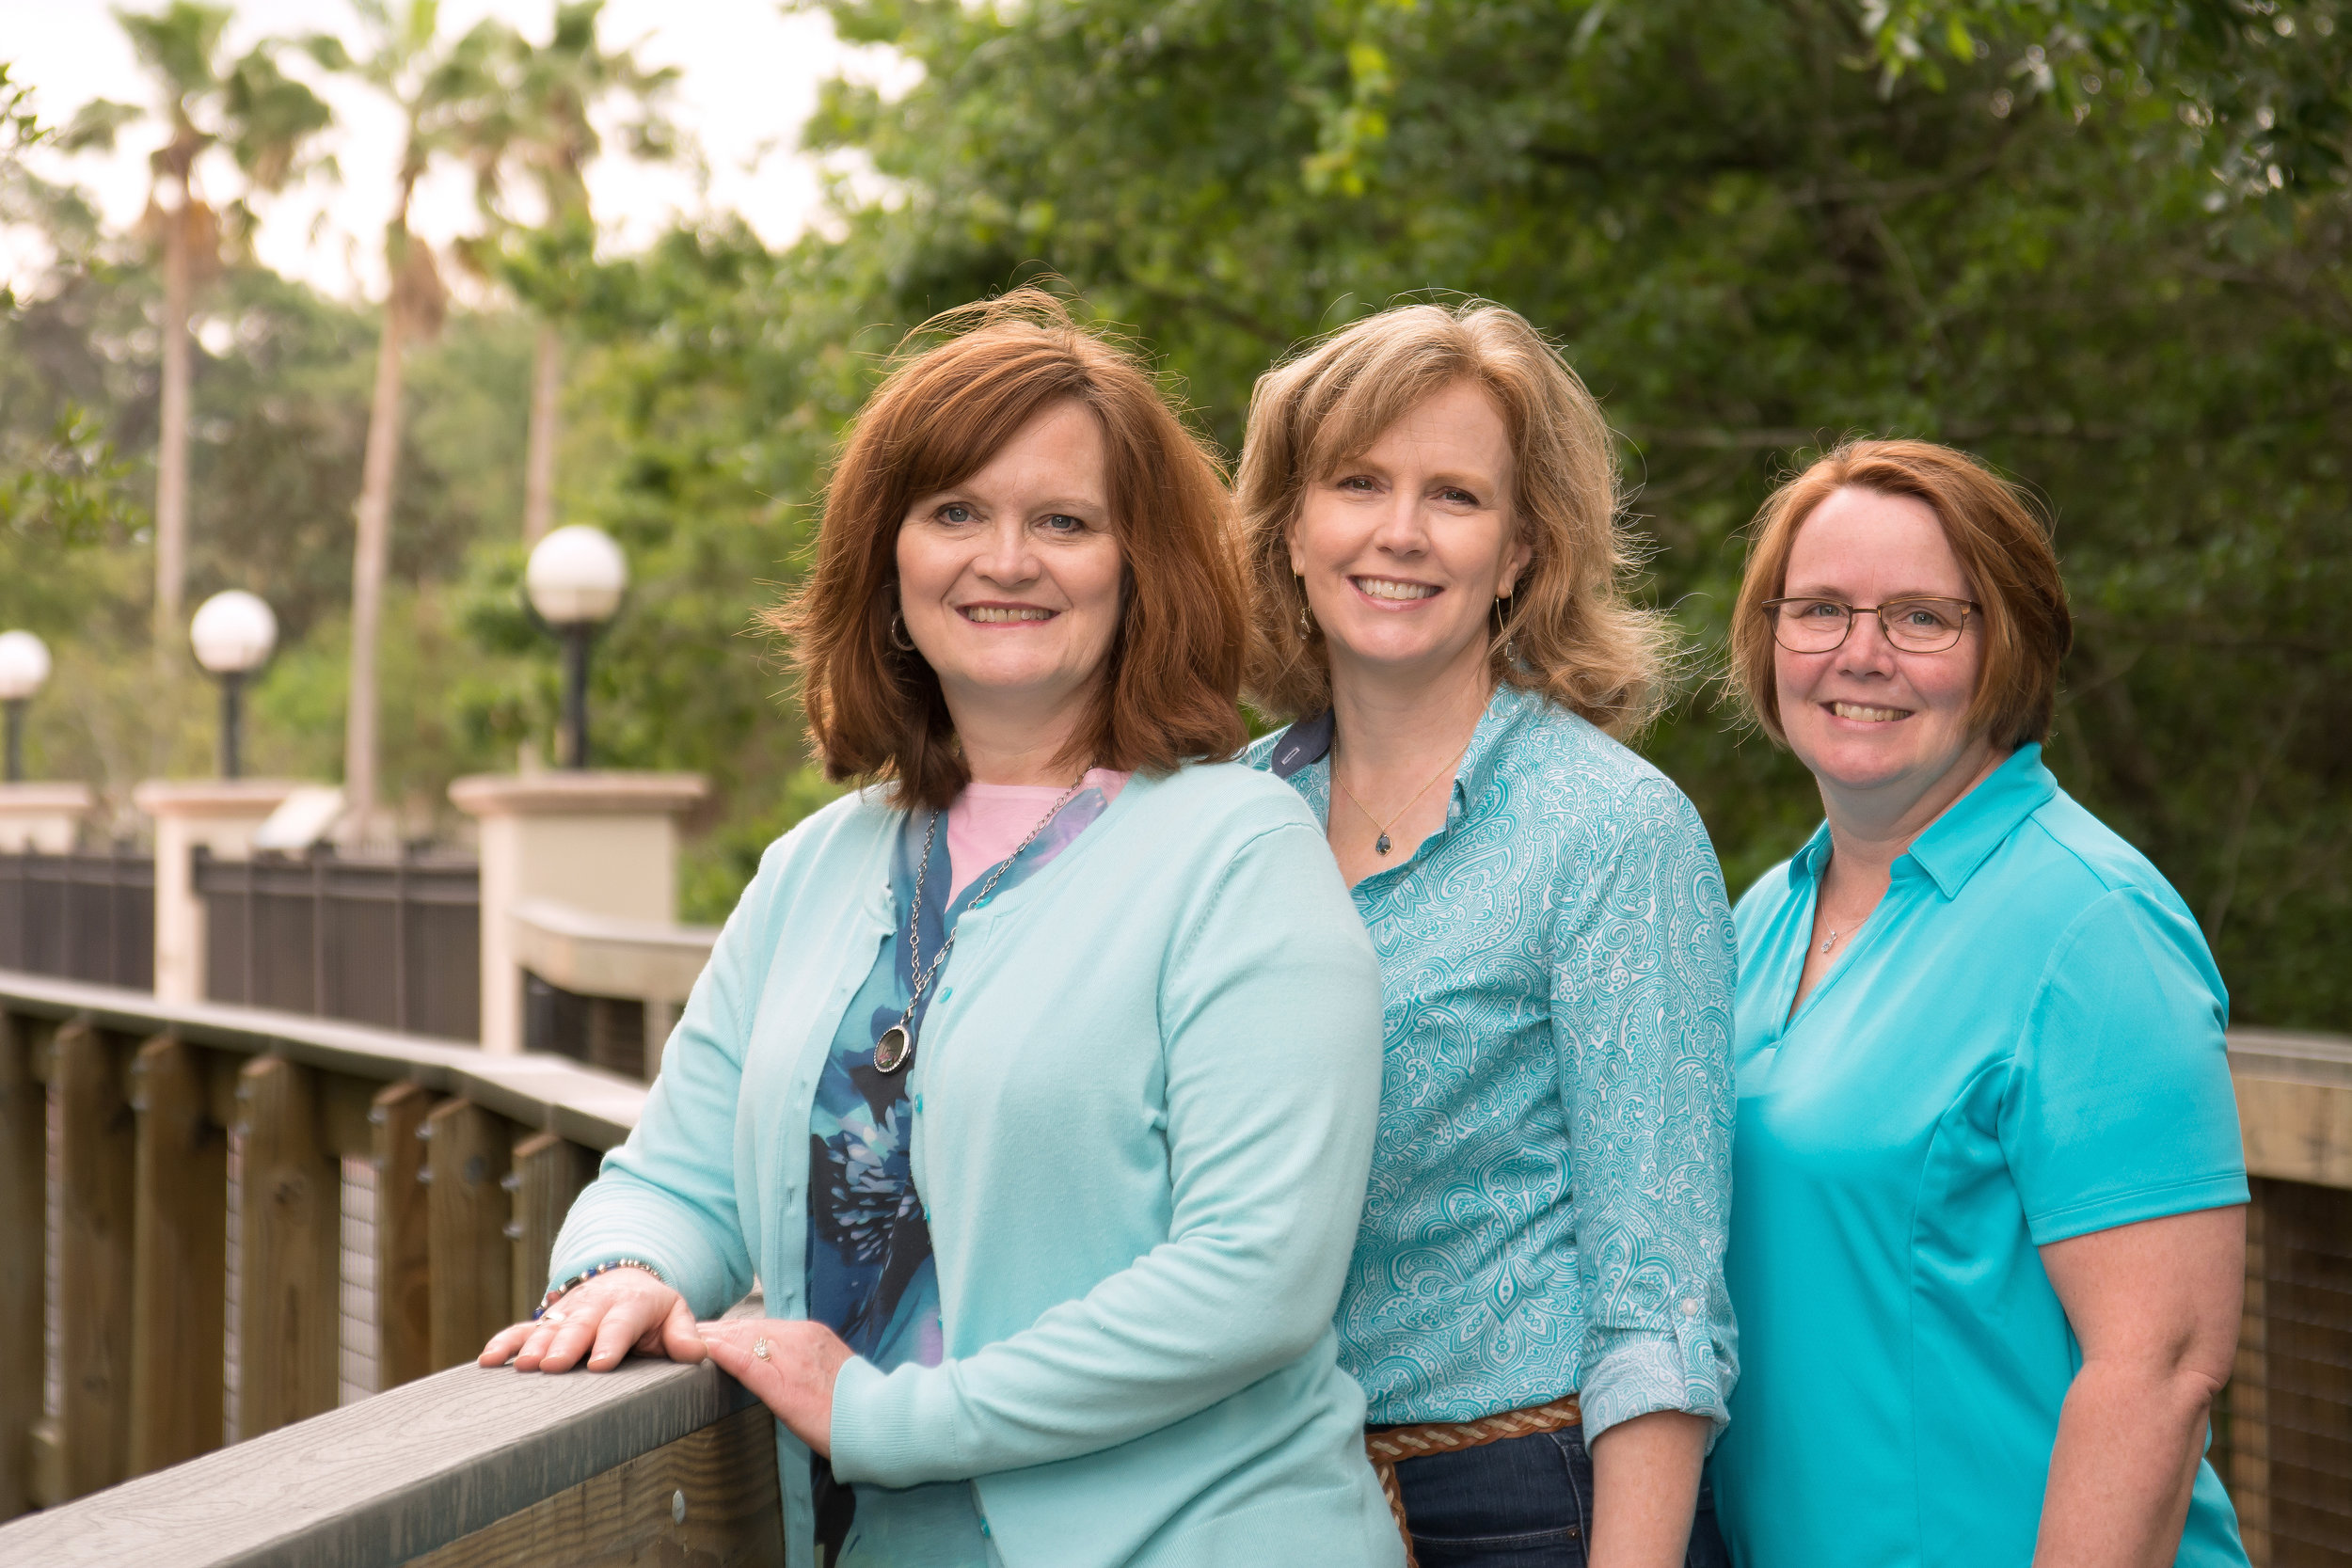 The Berry Sisters - March 31, 2018 - Florida Botanical Gardens